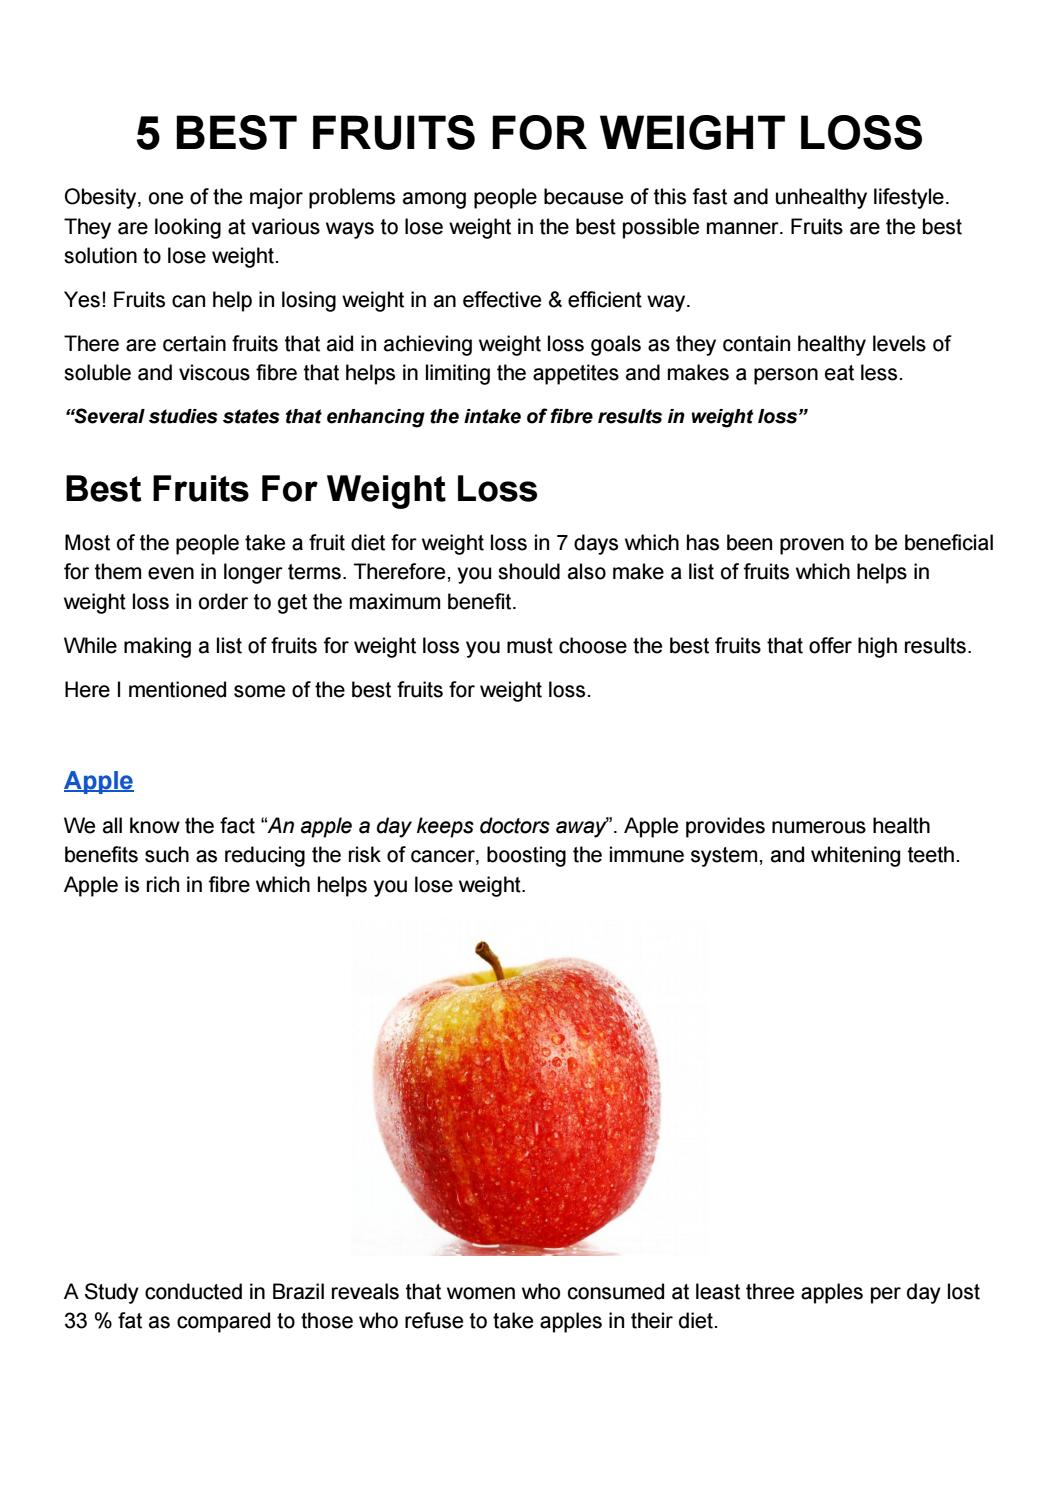 5 Best Fruits For Weight Loss By Akshay Divate Issuu